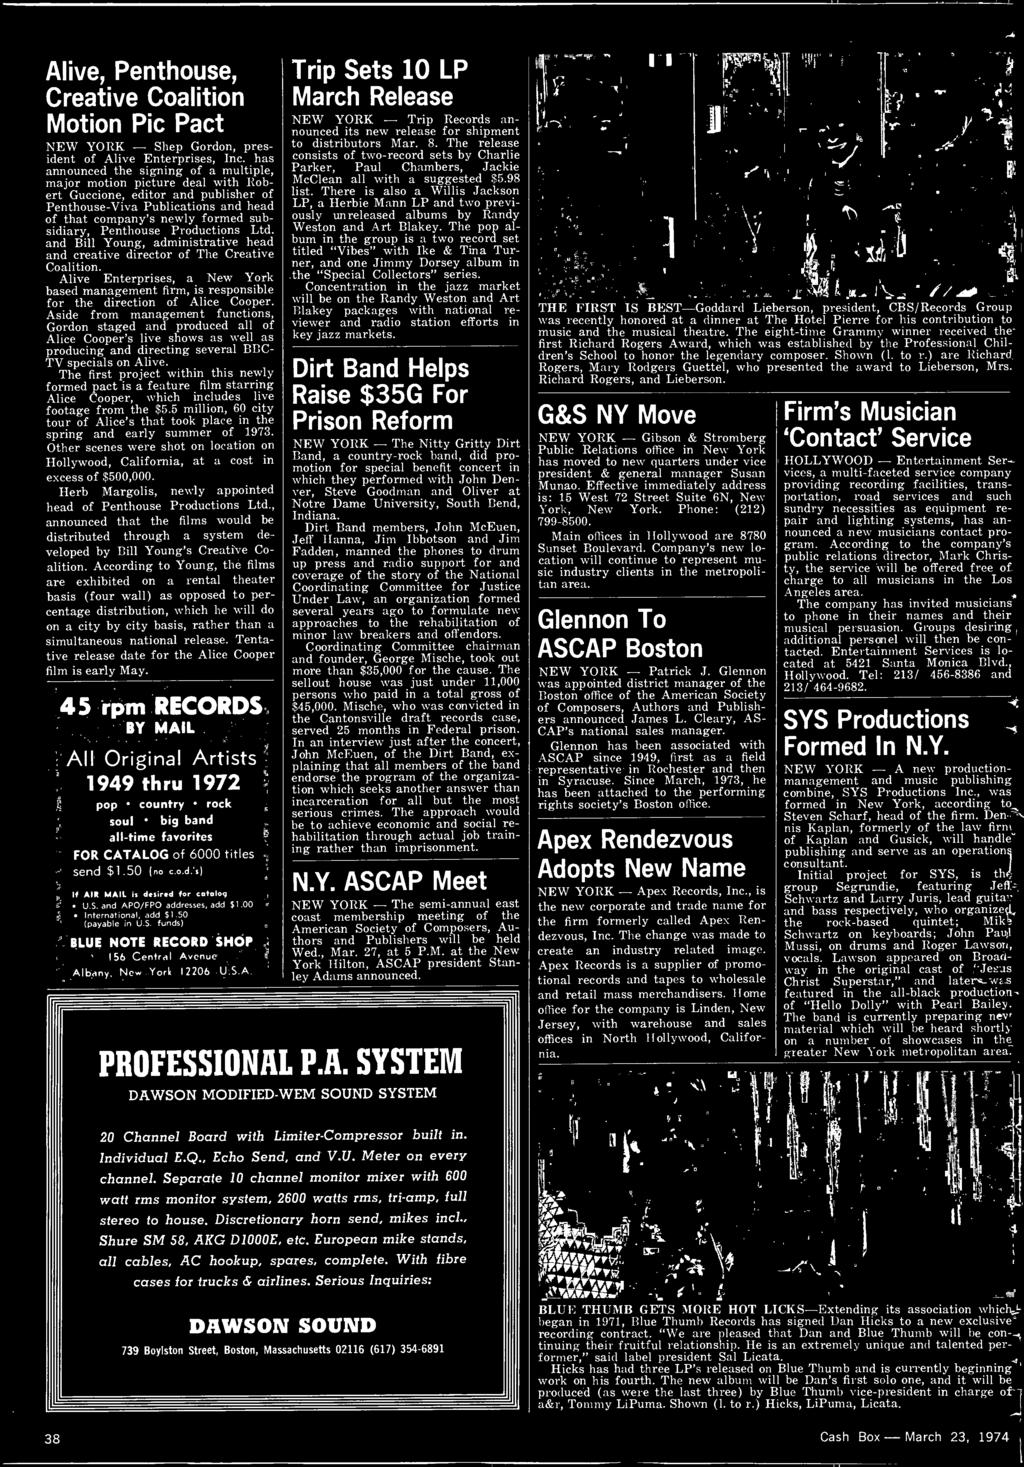 447 And T March 23 1974 Newspaper Pdf Cb Radio Microphone Wiring Diagram Http Wwwcbcintlcom Docs Aside From Management Functions Gordon Staged Produced All Of Alice Coopers Live Shows As